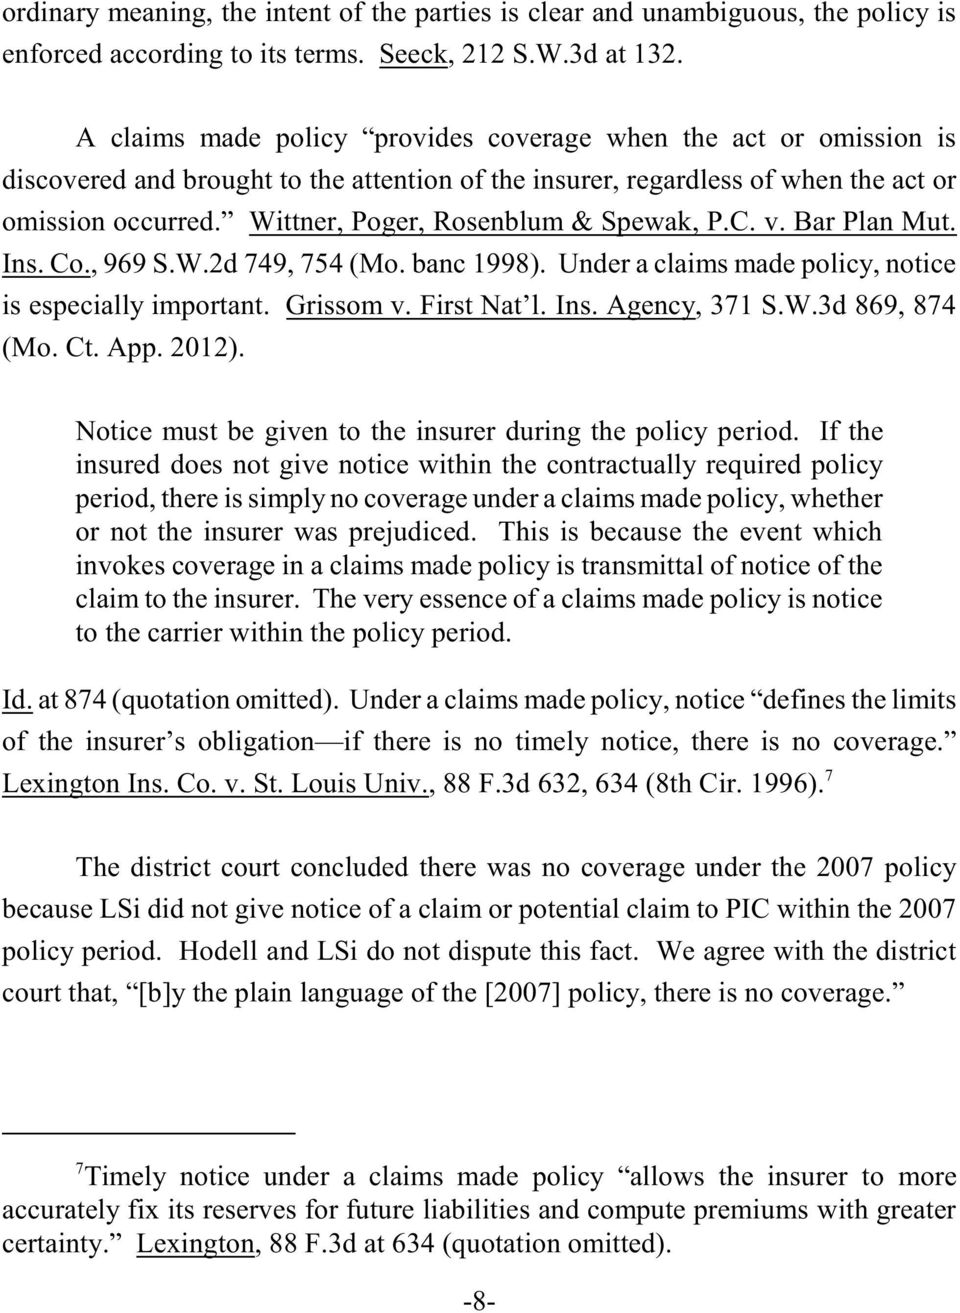 Wittner, Poger, Rosenblum & Spewak, P.C. v. Bar Plan Mut. Ins. Co., 969 S.W.2d 749, 754 (Mo. banc 1998). Under a claims made policy, notice is especially important. Grissom v. First Nat l. Ins. Agency, 371 S.